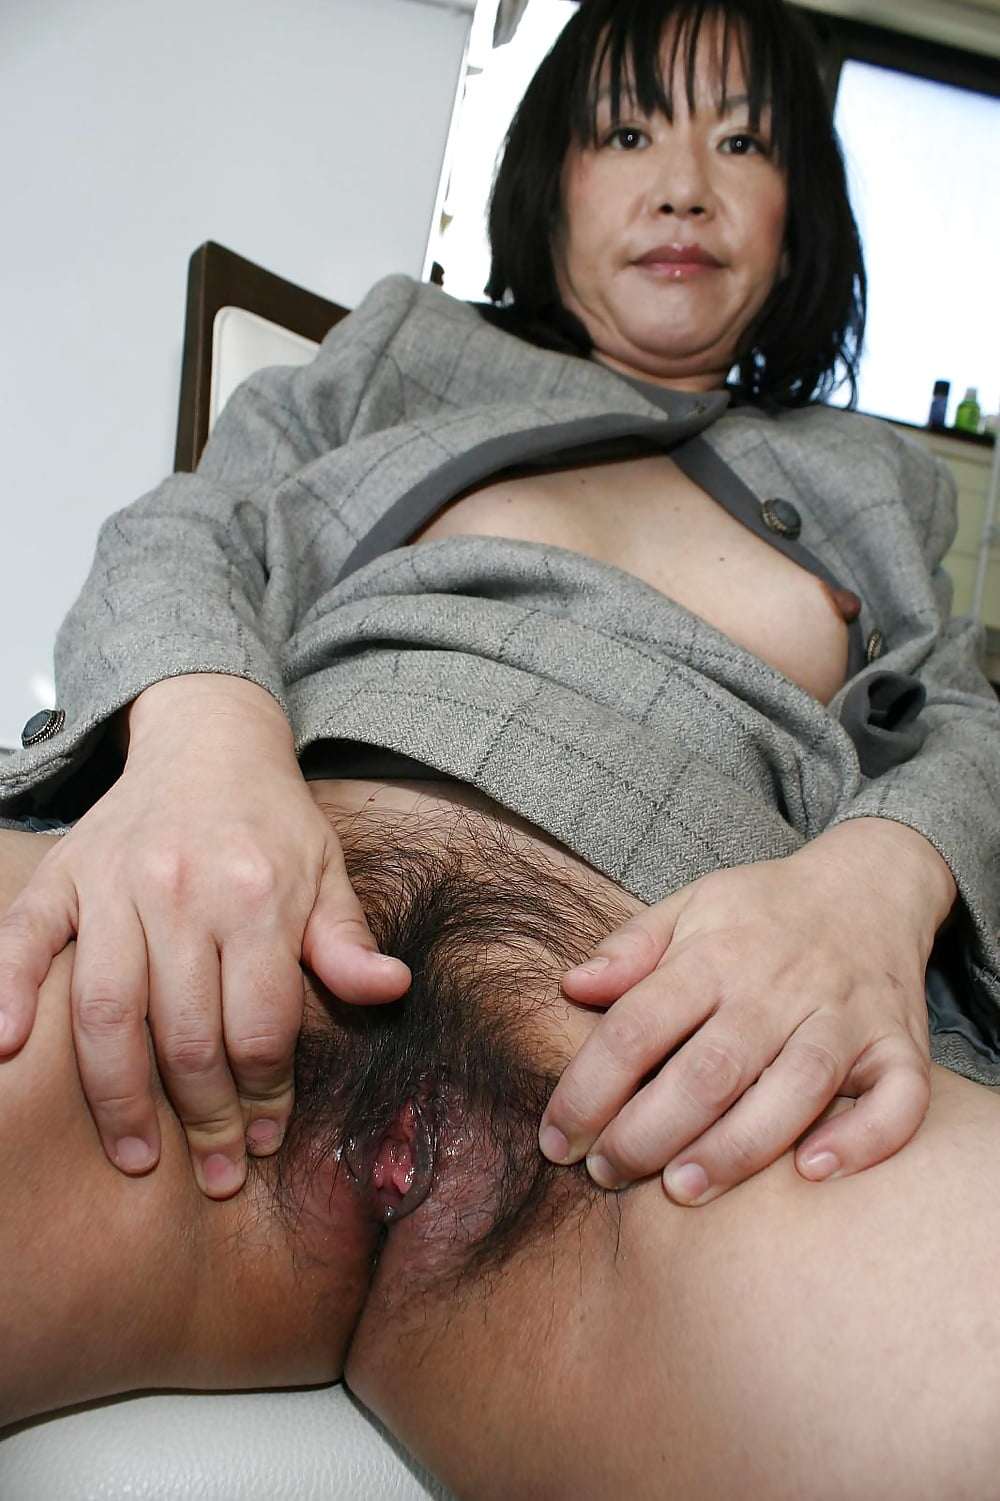 xxx-free-asian-granny-movies-naked-cute-blonde-cheerleaders